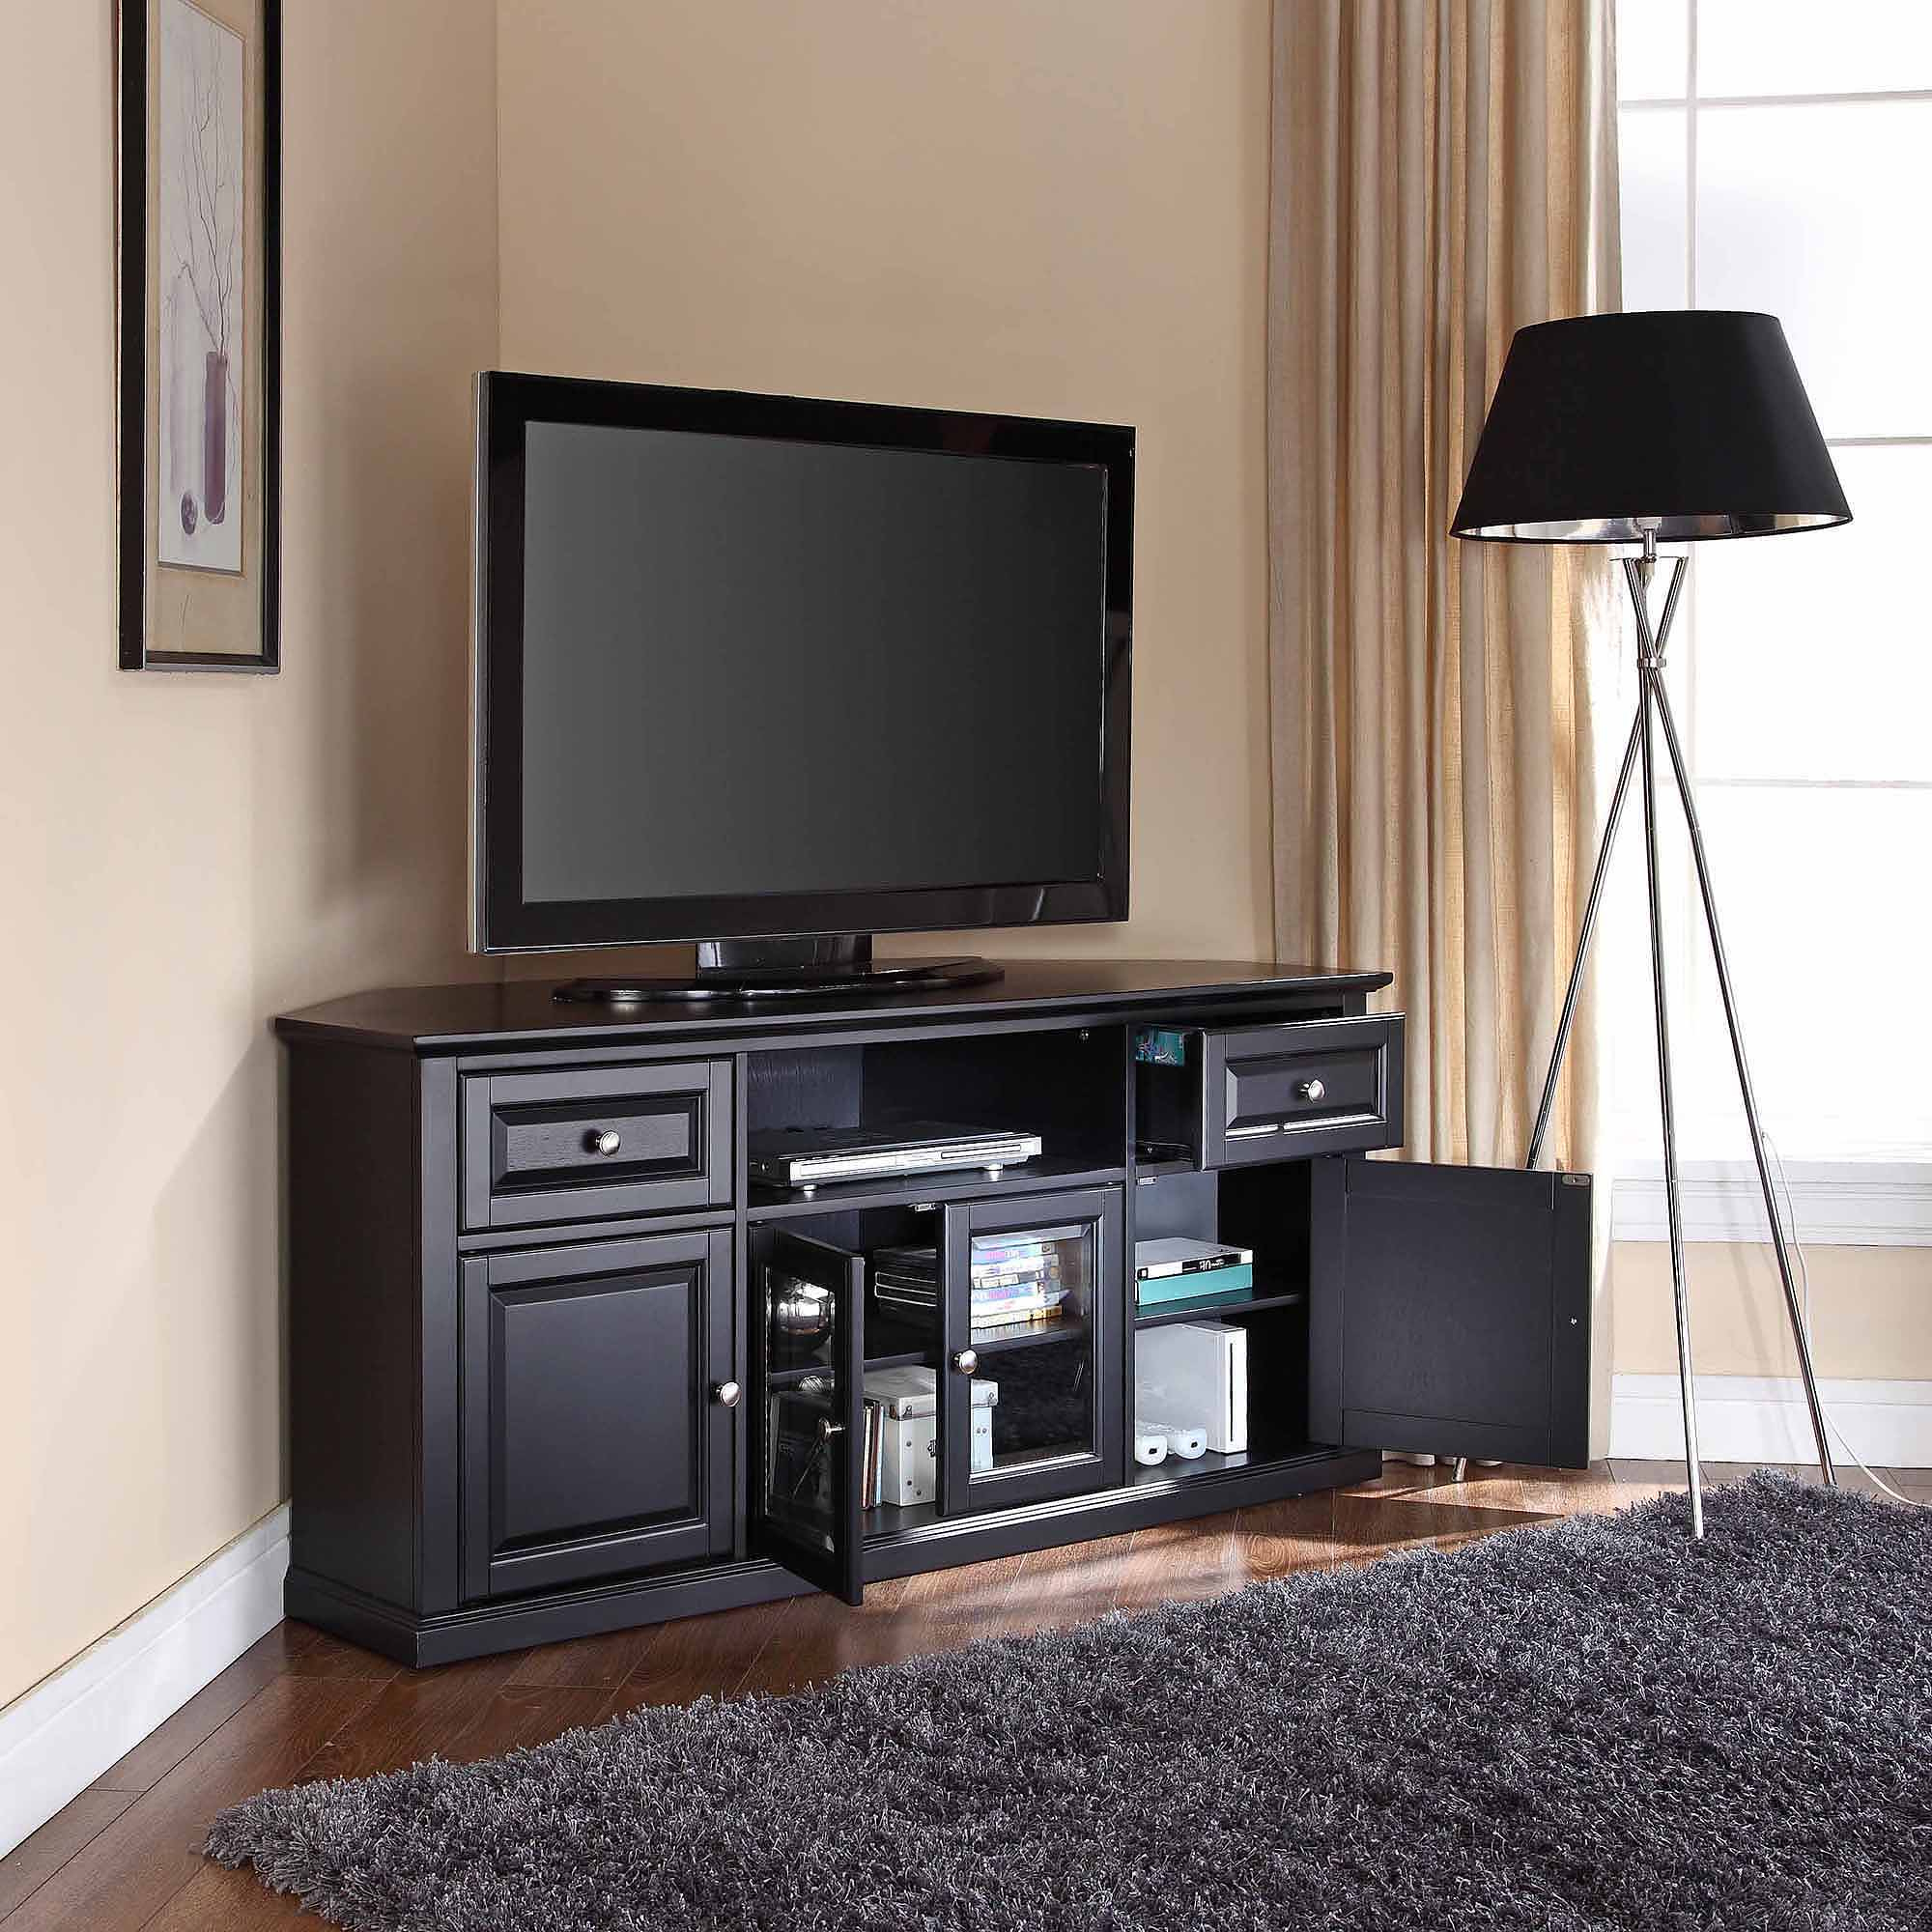 Well Known Corner Tv Stands For 55 Inch Tv With Regard To 65 Inch Tv Stand Walmart 55 Stands Sears Costco 199 60 Corner (View 11 of 20)